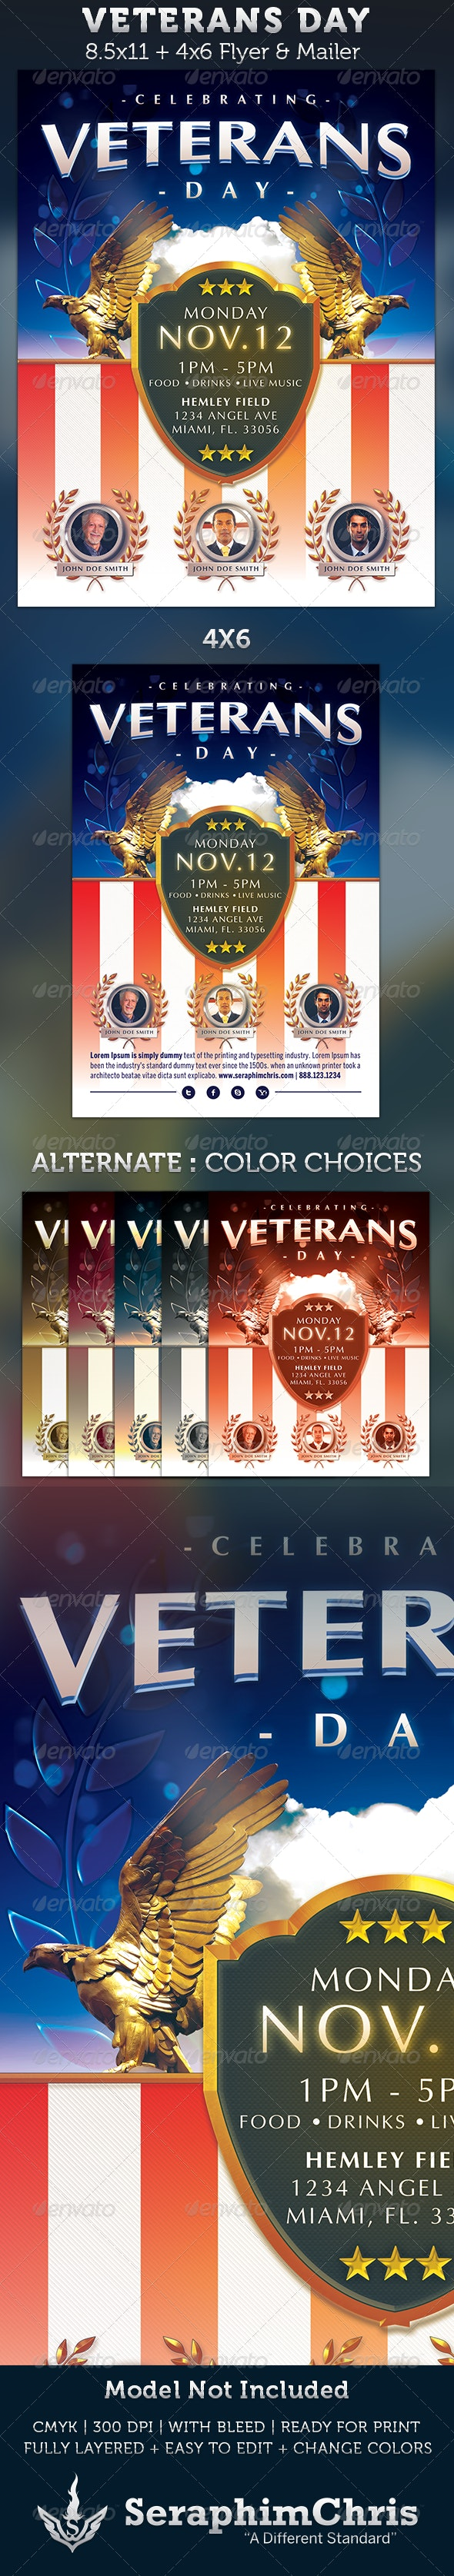 Veterans Day Flyer Template - Holidays Events